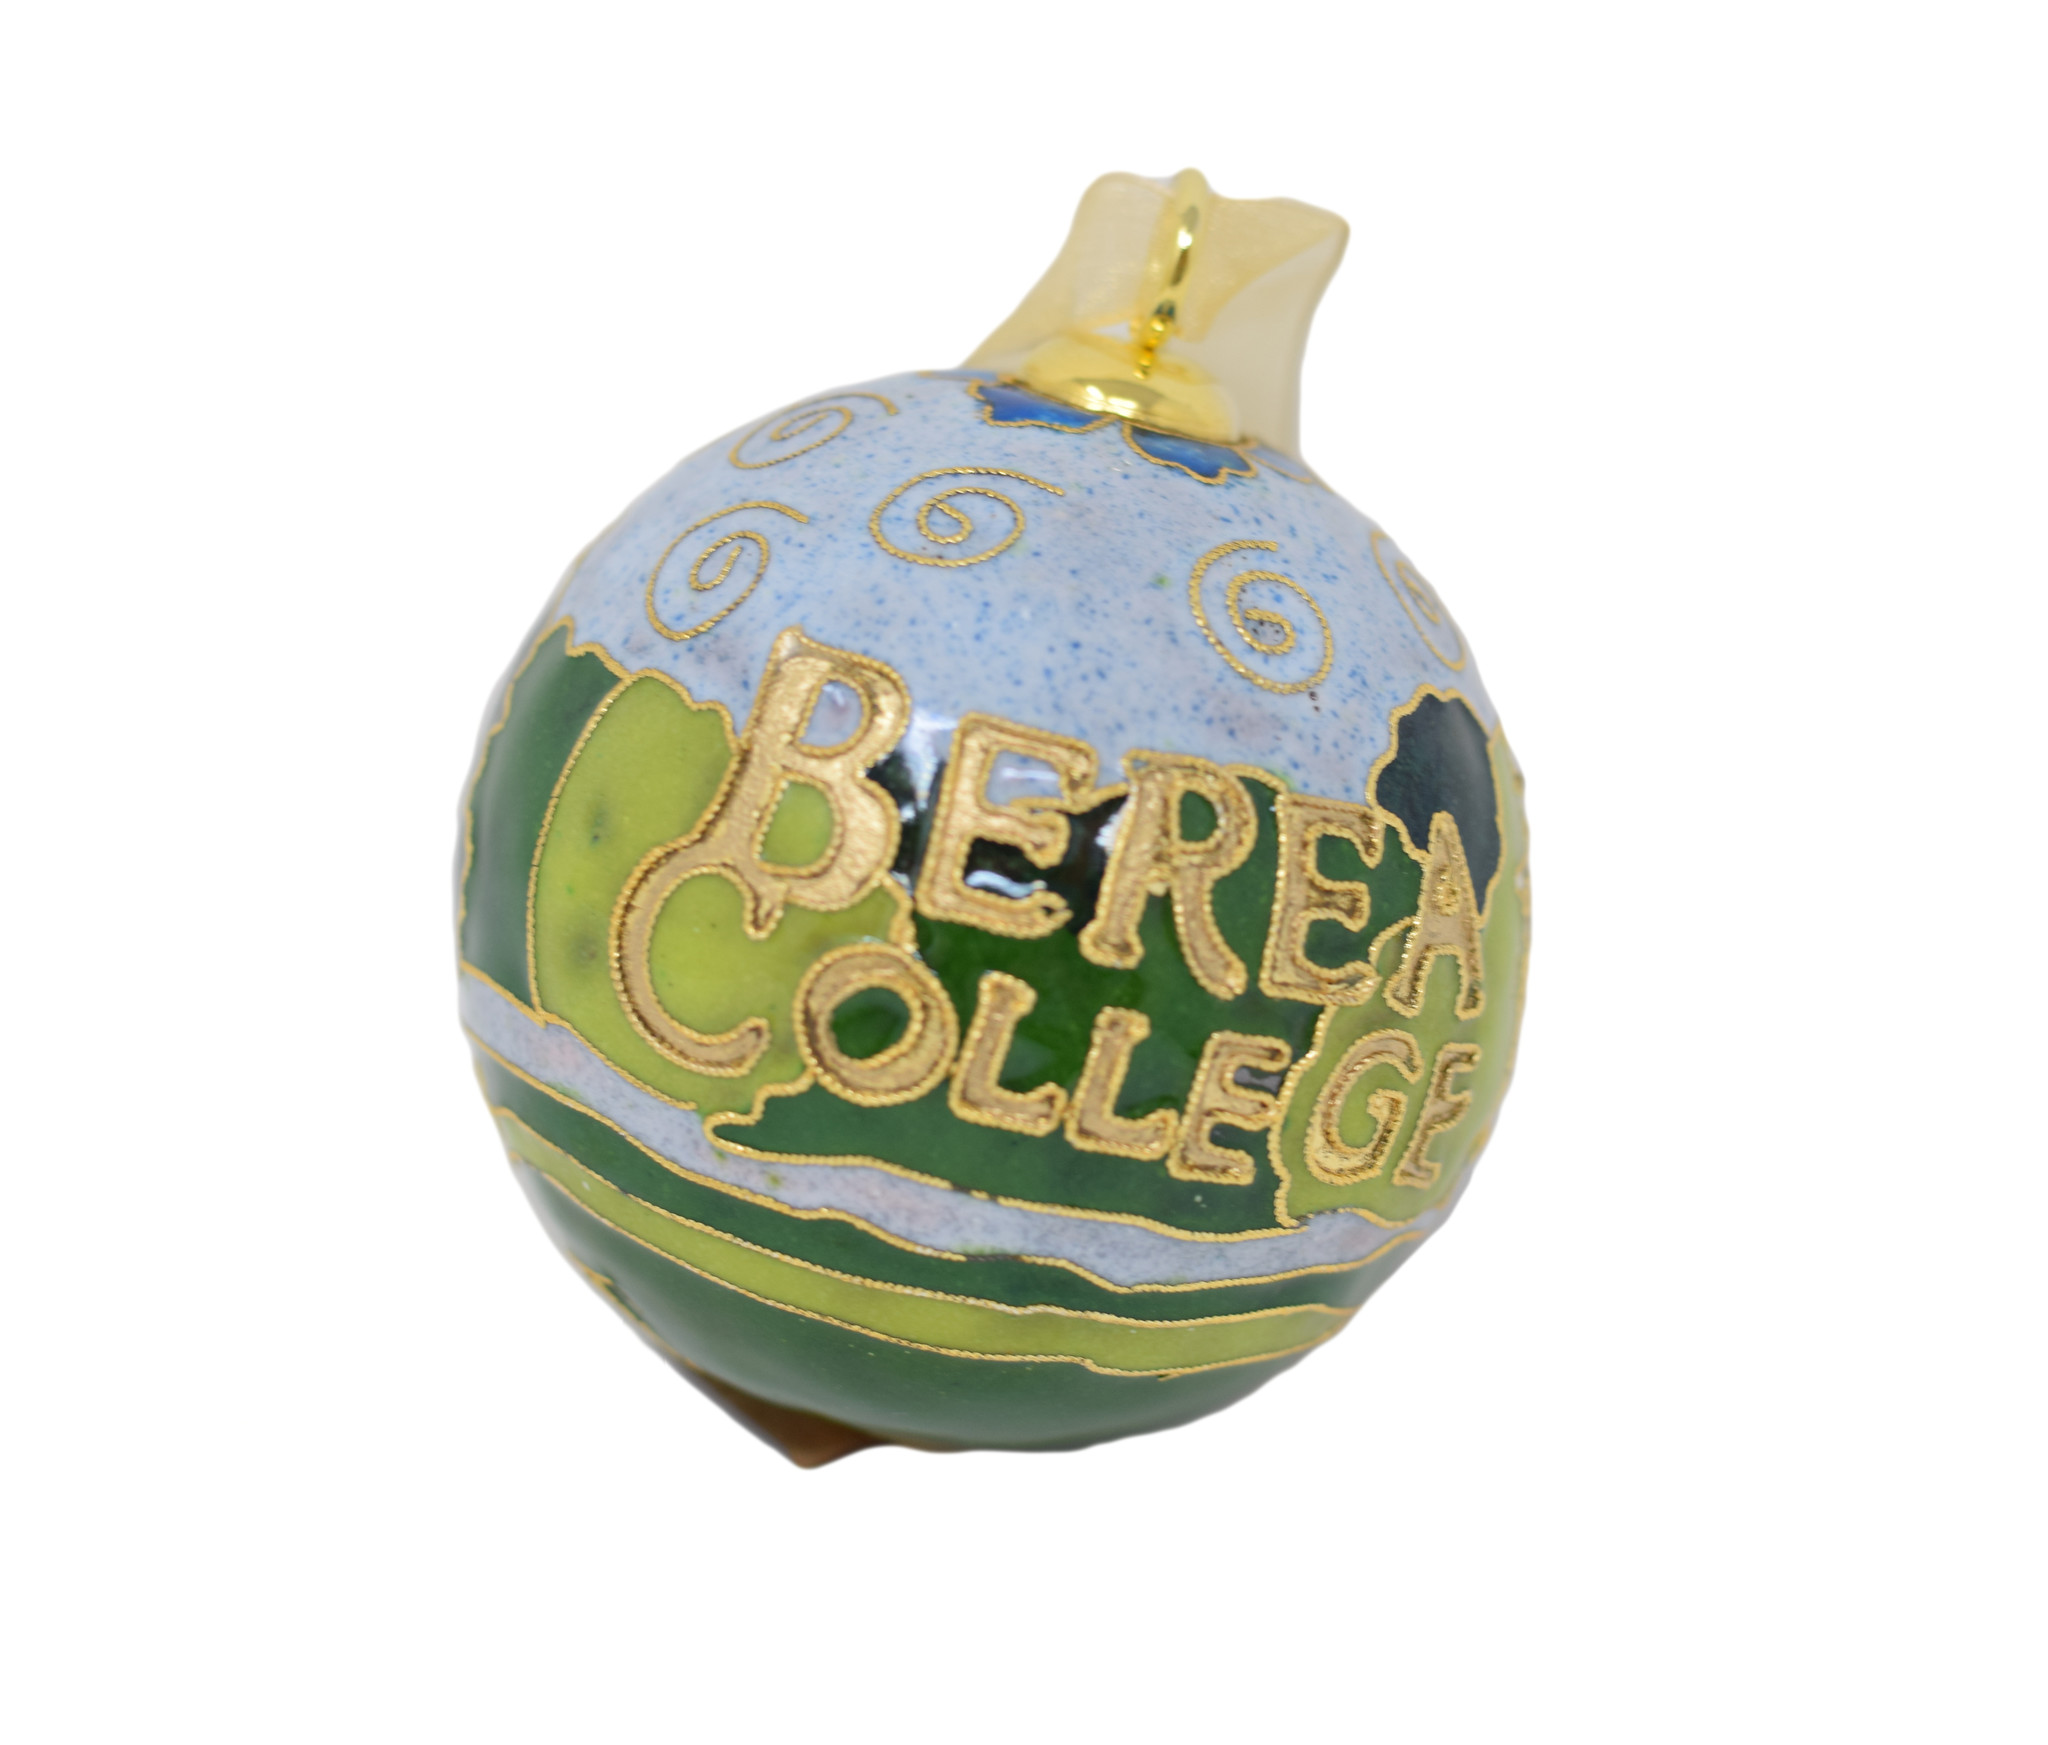 Berea College / Boone Tavern Ornament-1